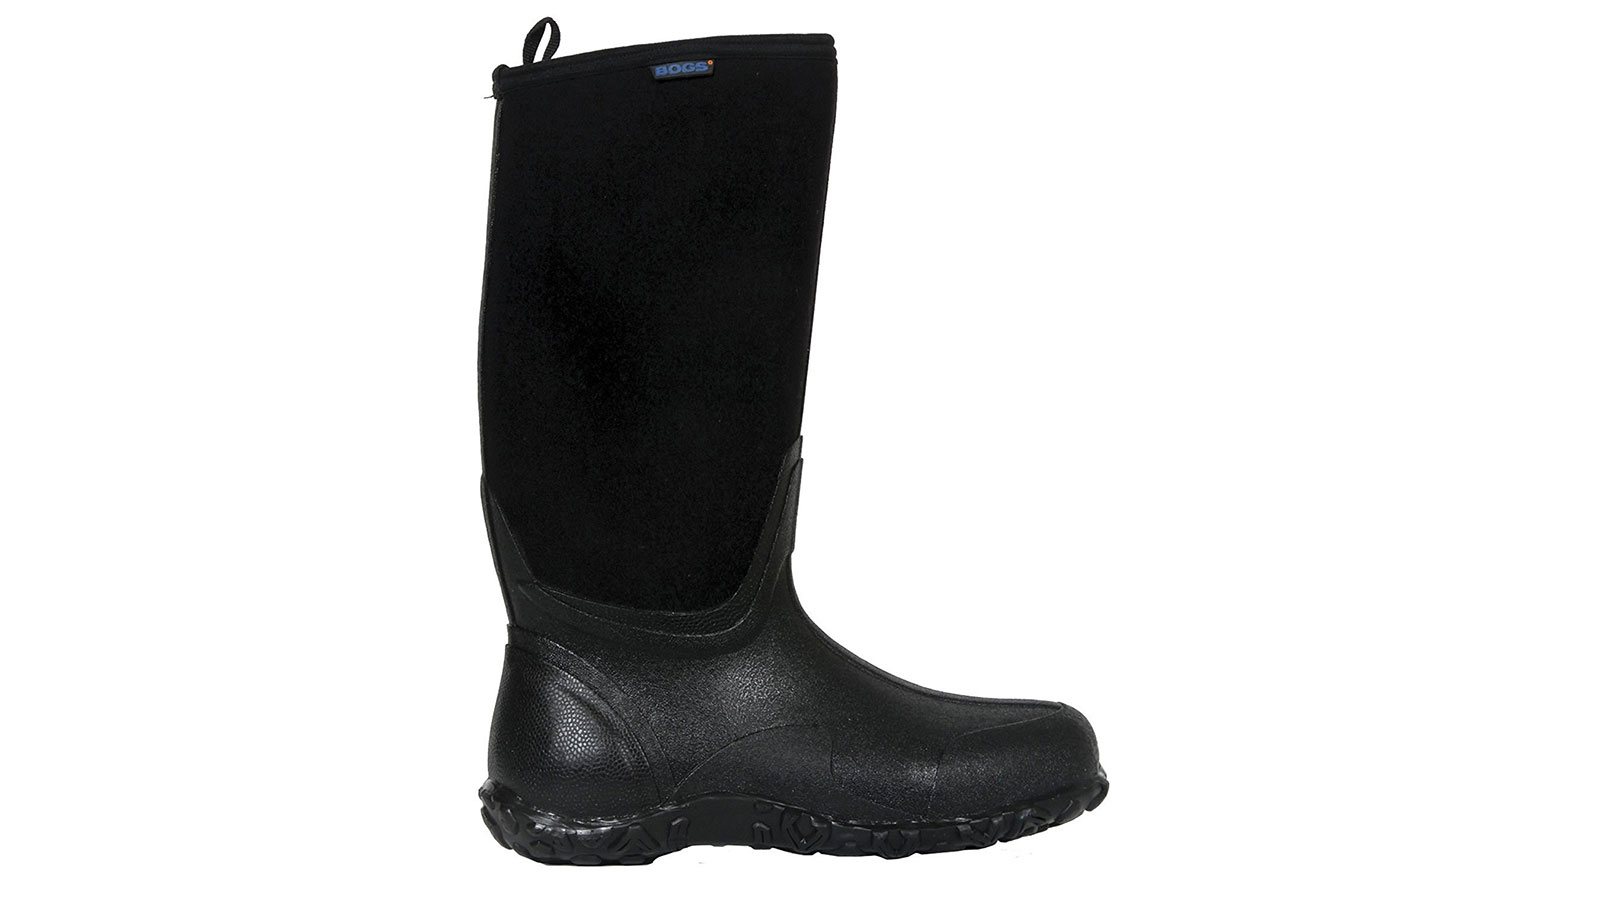 Bogs Classic High Men's Rain Boot | the best men's rain boots